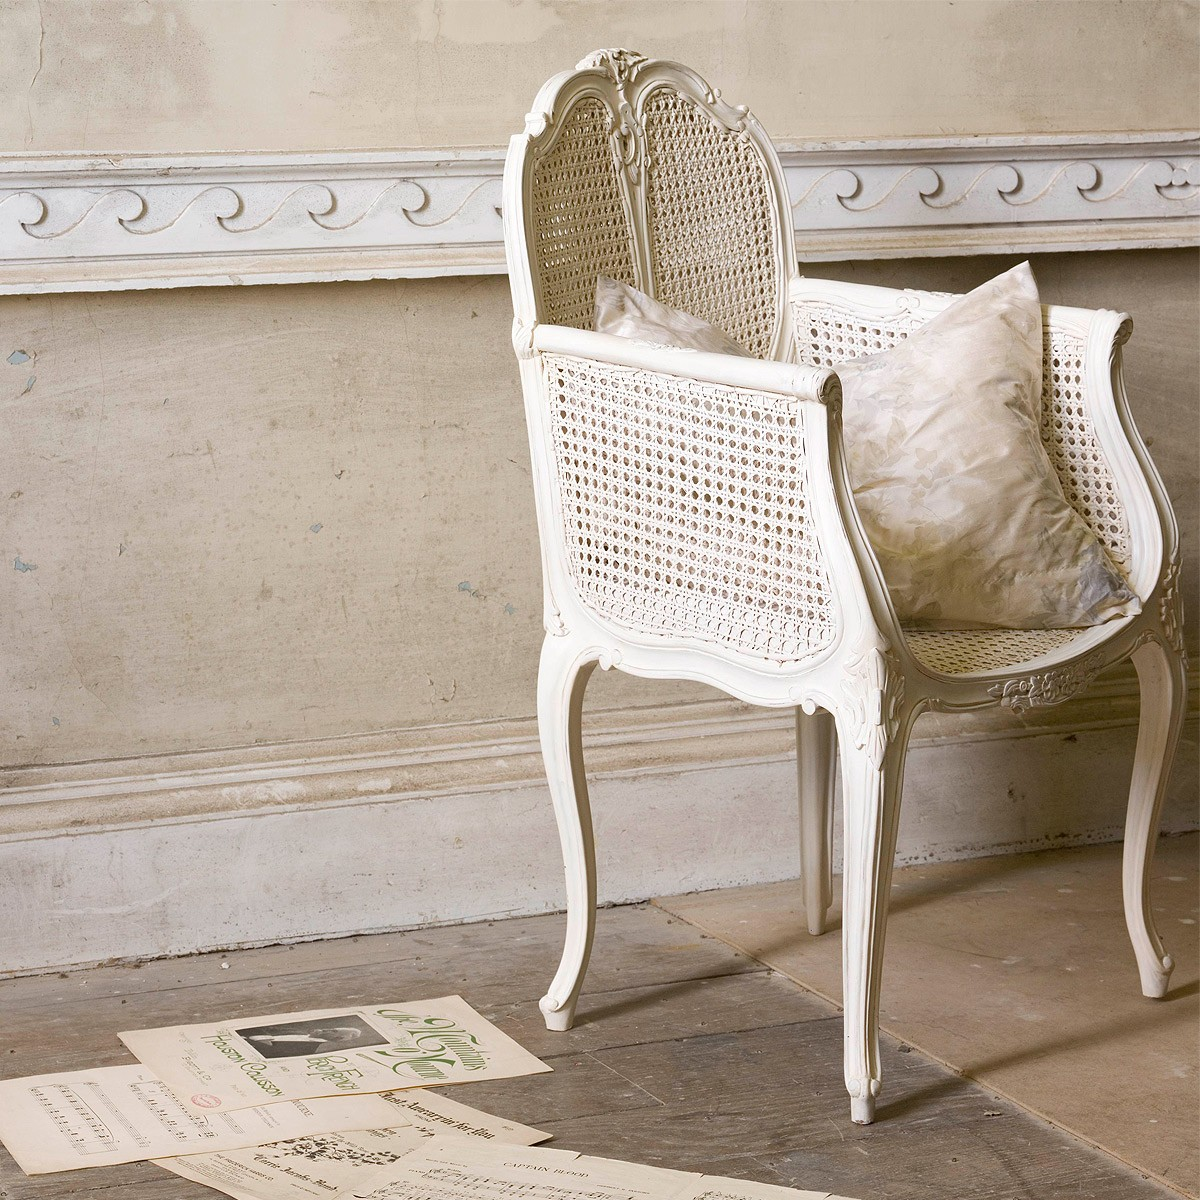 Provencal Rattan White French Chair, French Bedroom Company